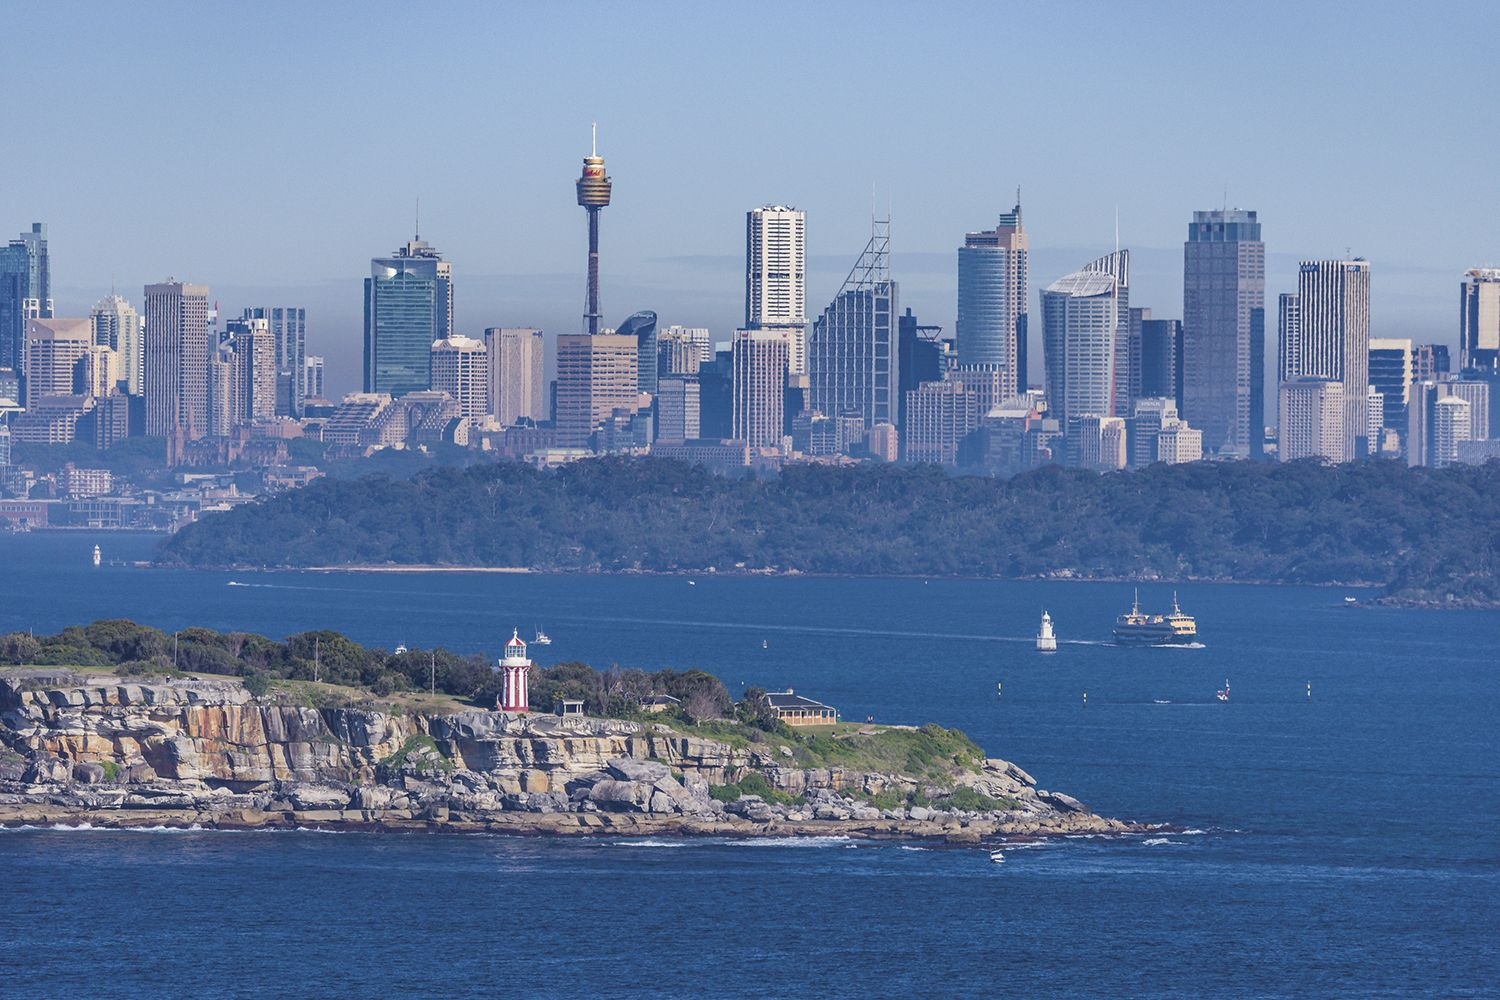 Views from North Head, Manly of the Sydney skyline including Vaucluse and Bradleys Head in Mosman